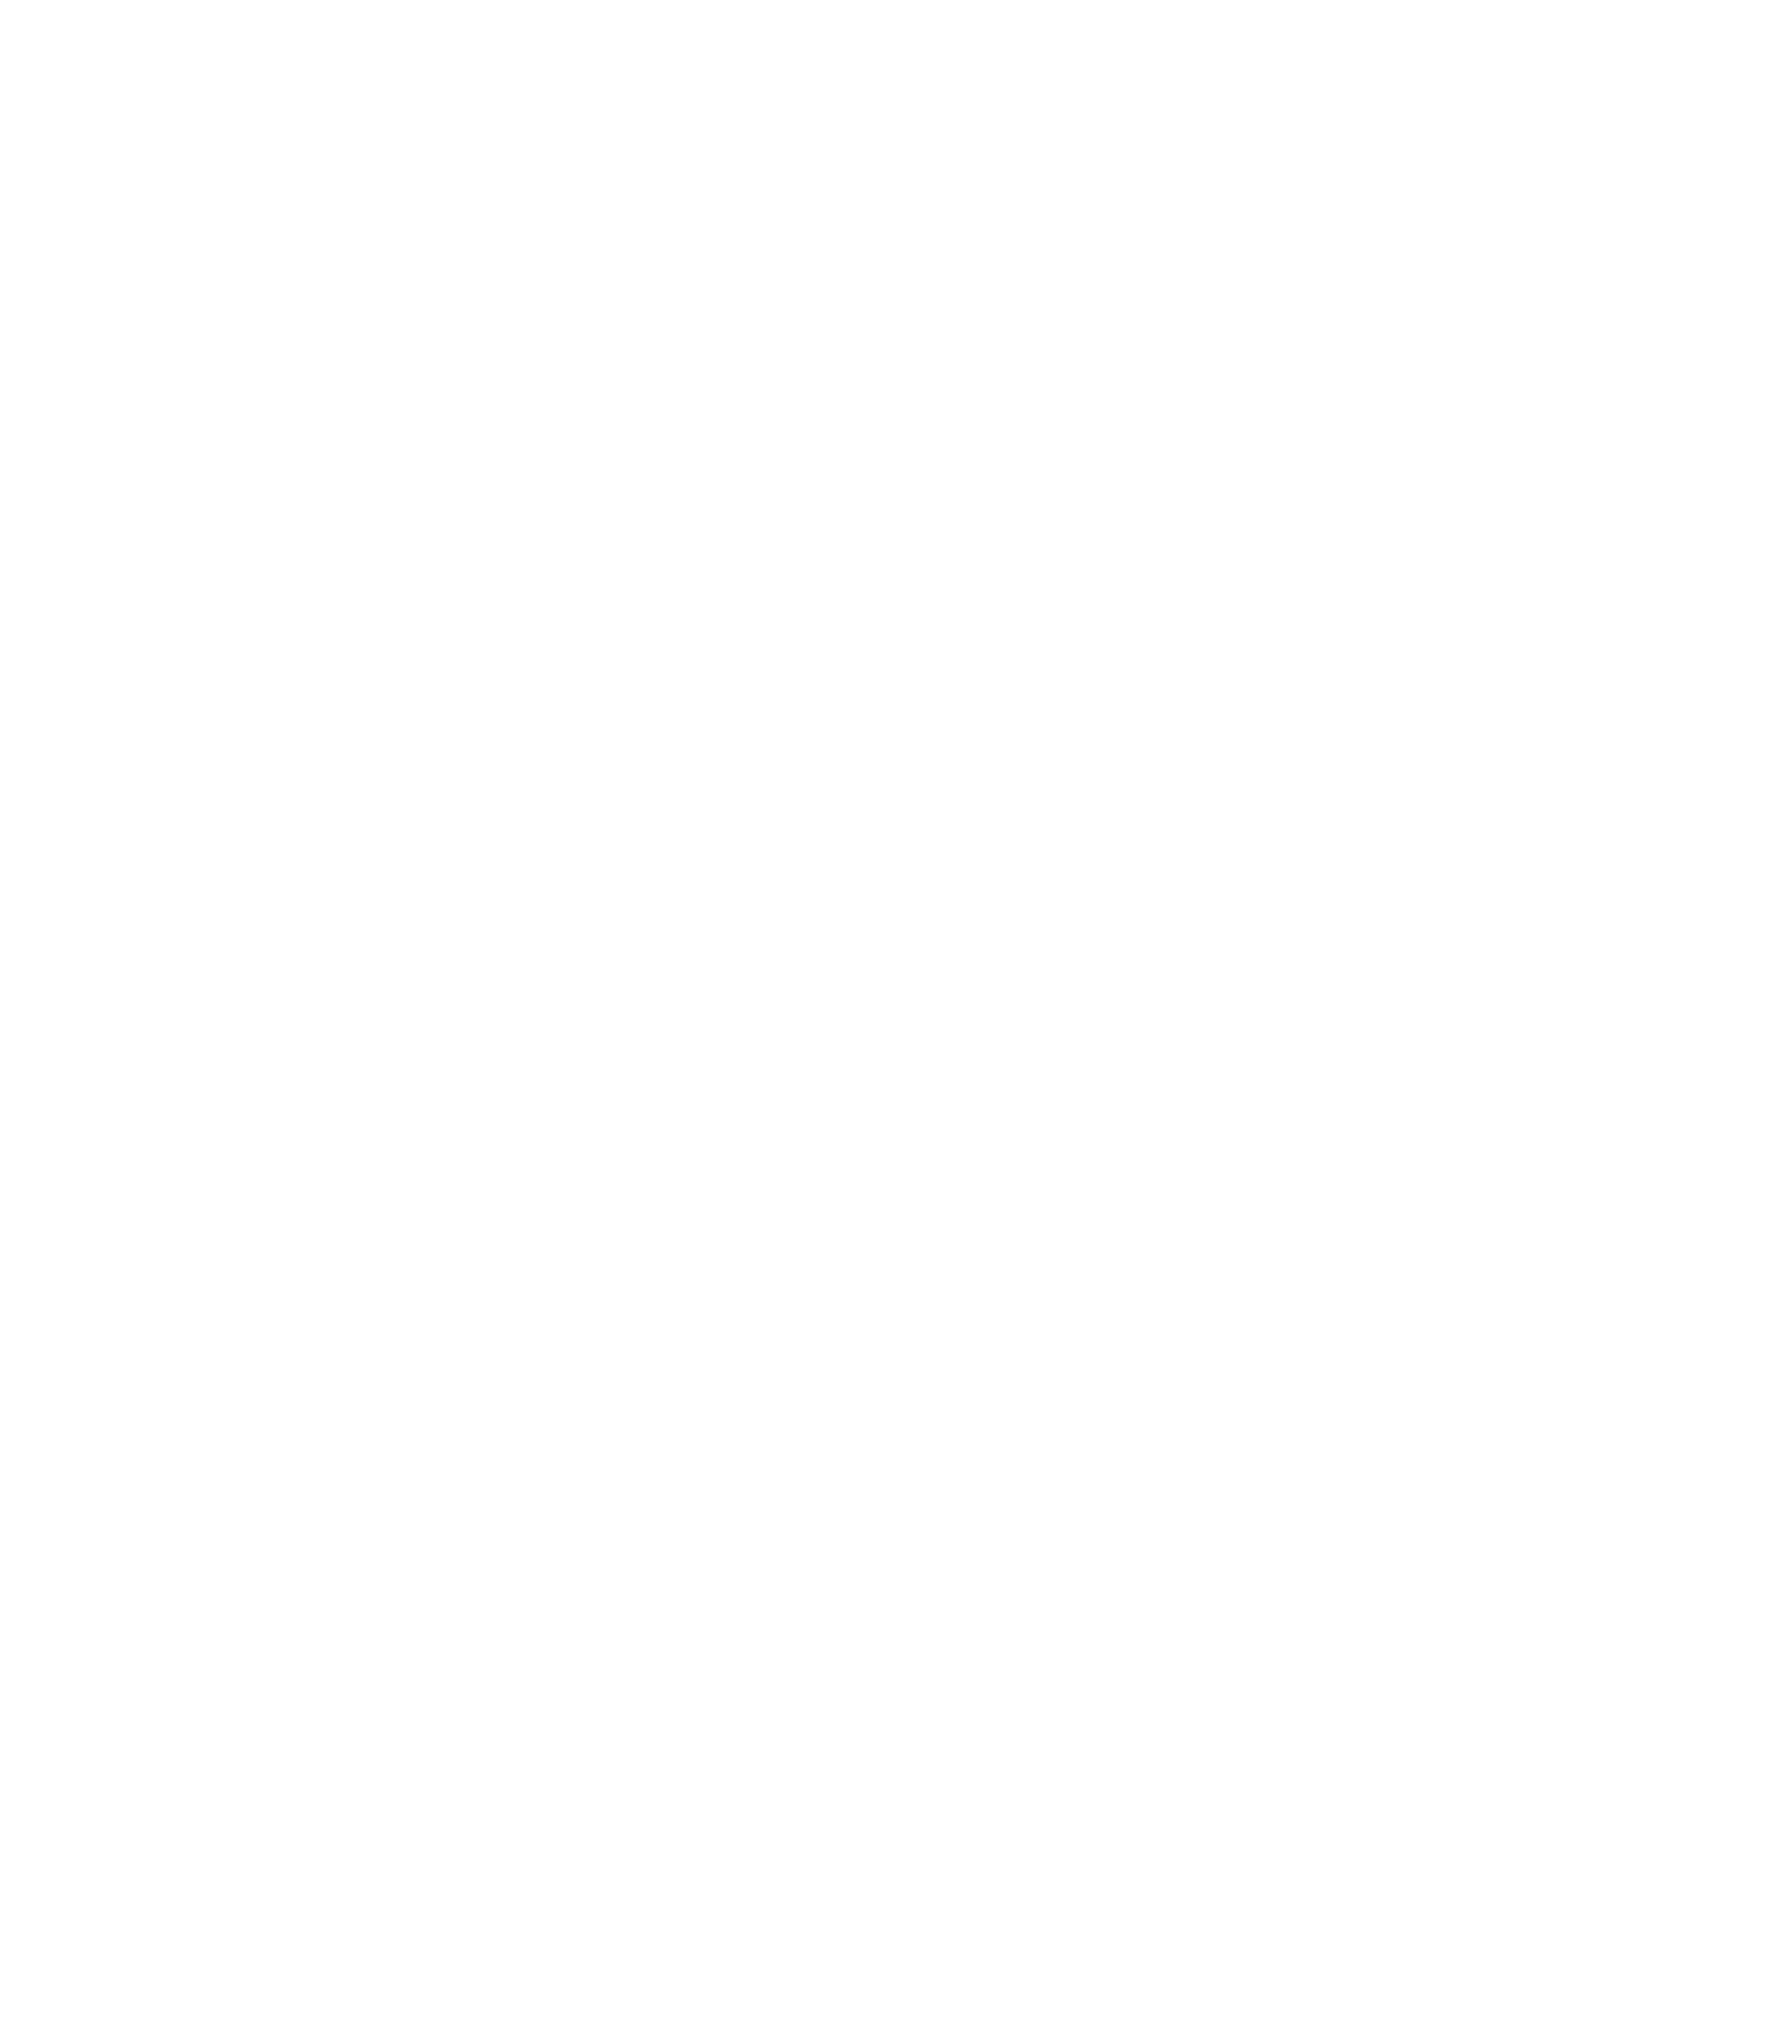 COMINDER-w.png